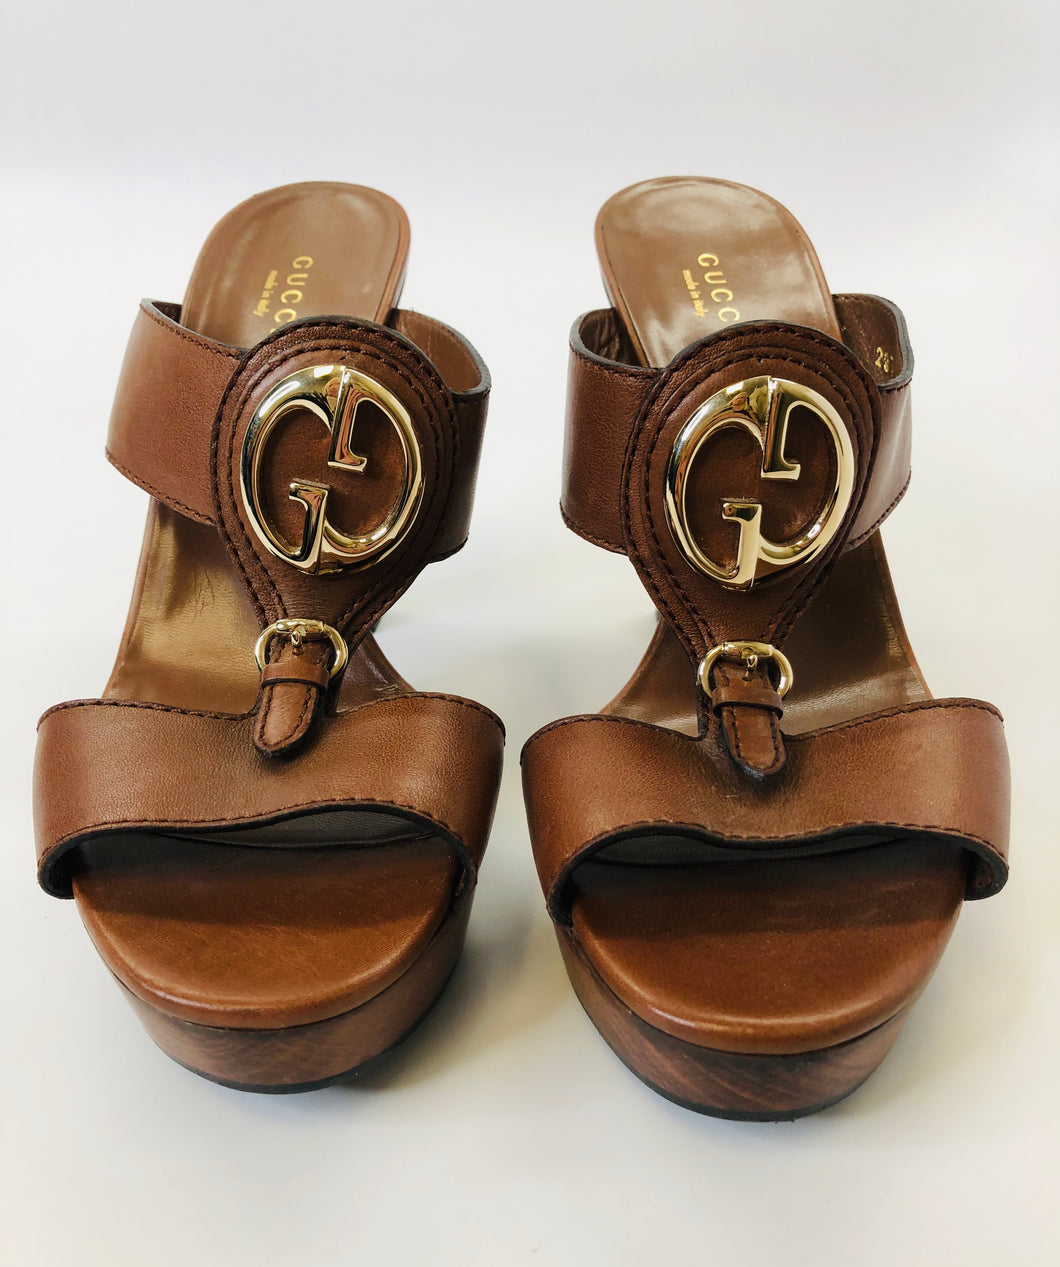 Gucci 1973 Wooden Platform Sandals Size 38 1/2